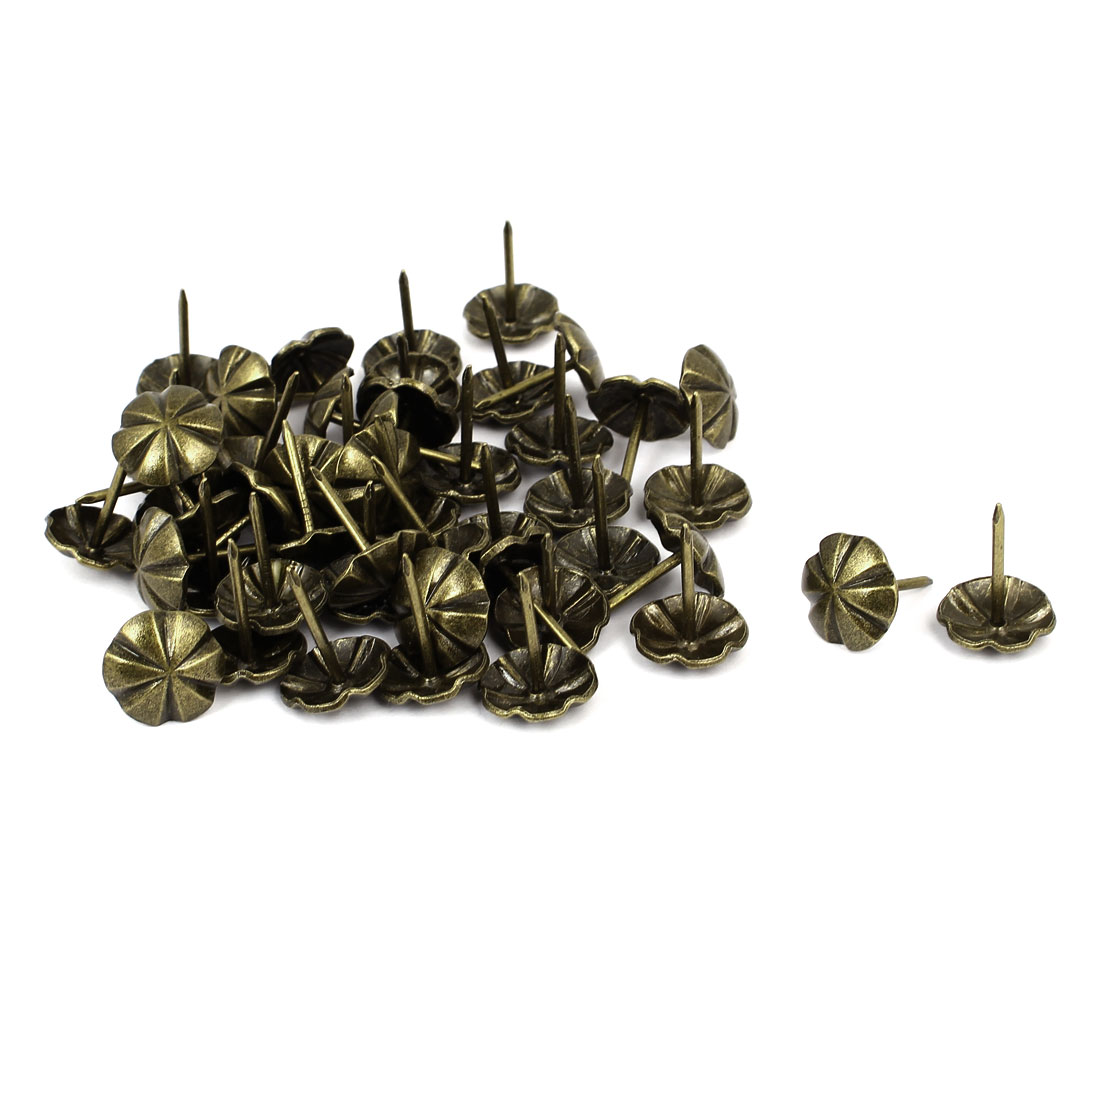 16mm Dia Metal Round Domed Head Upholstery Tack Nail Pushpin Bronze Tone 50pcs